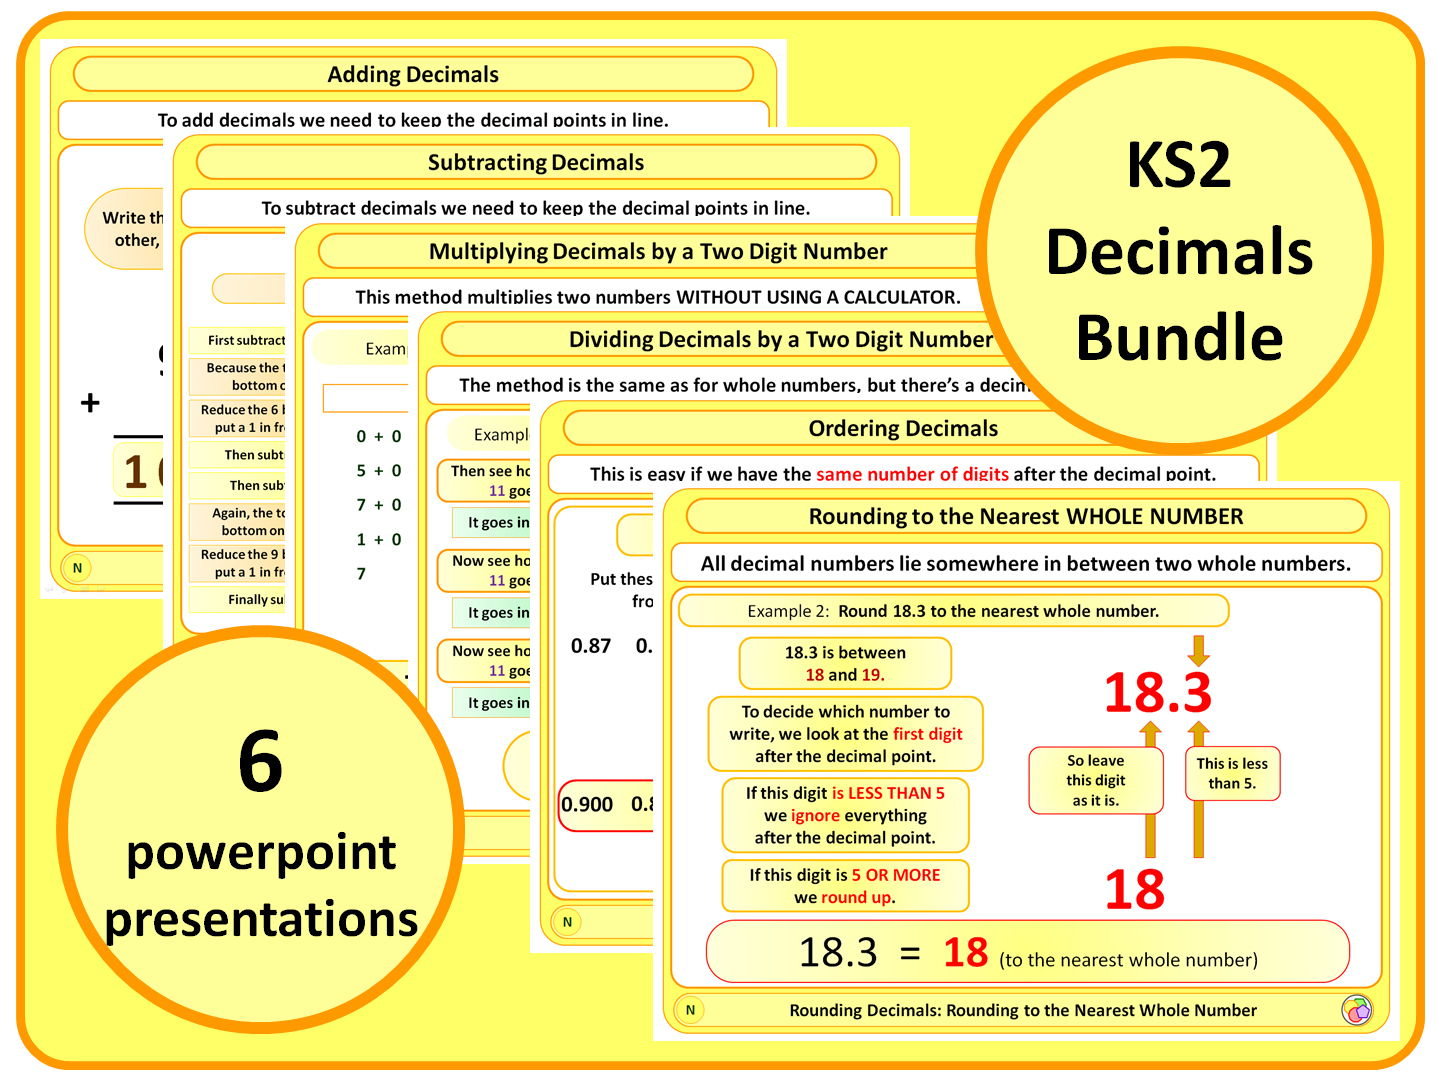 Ks2 Decimals Bundle